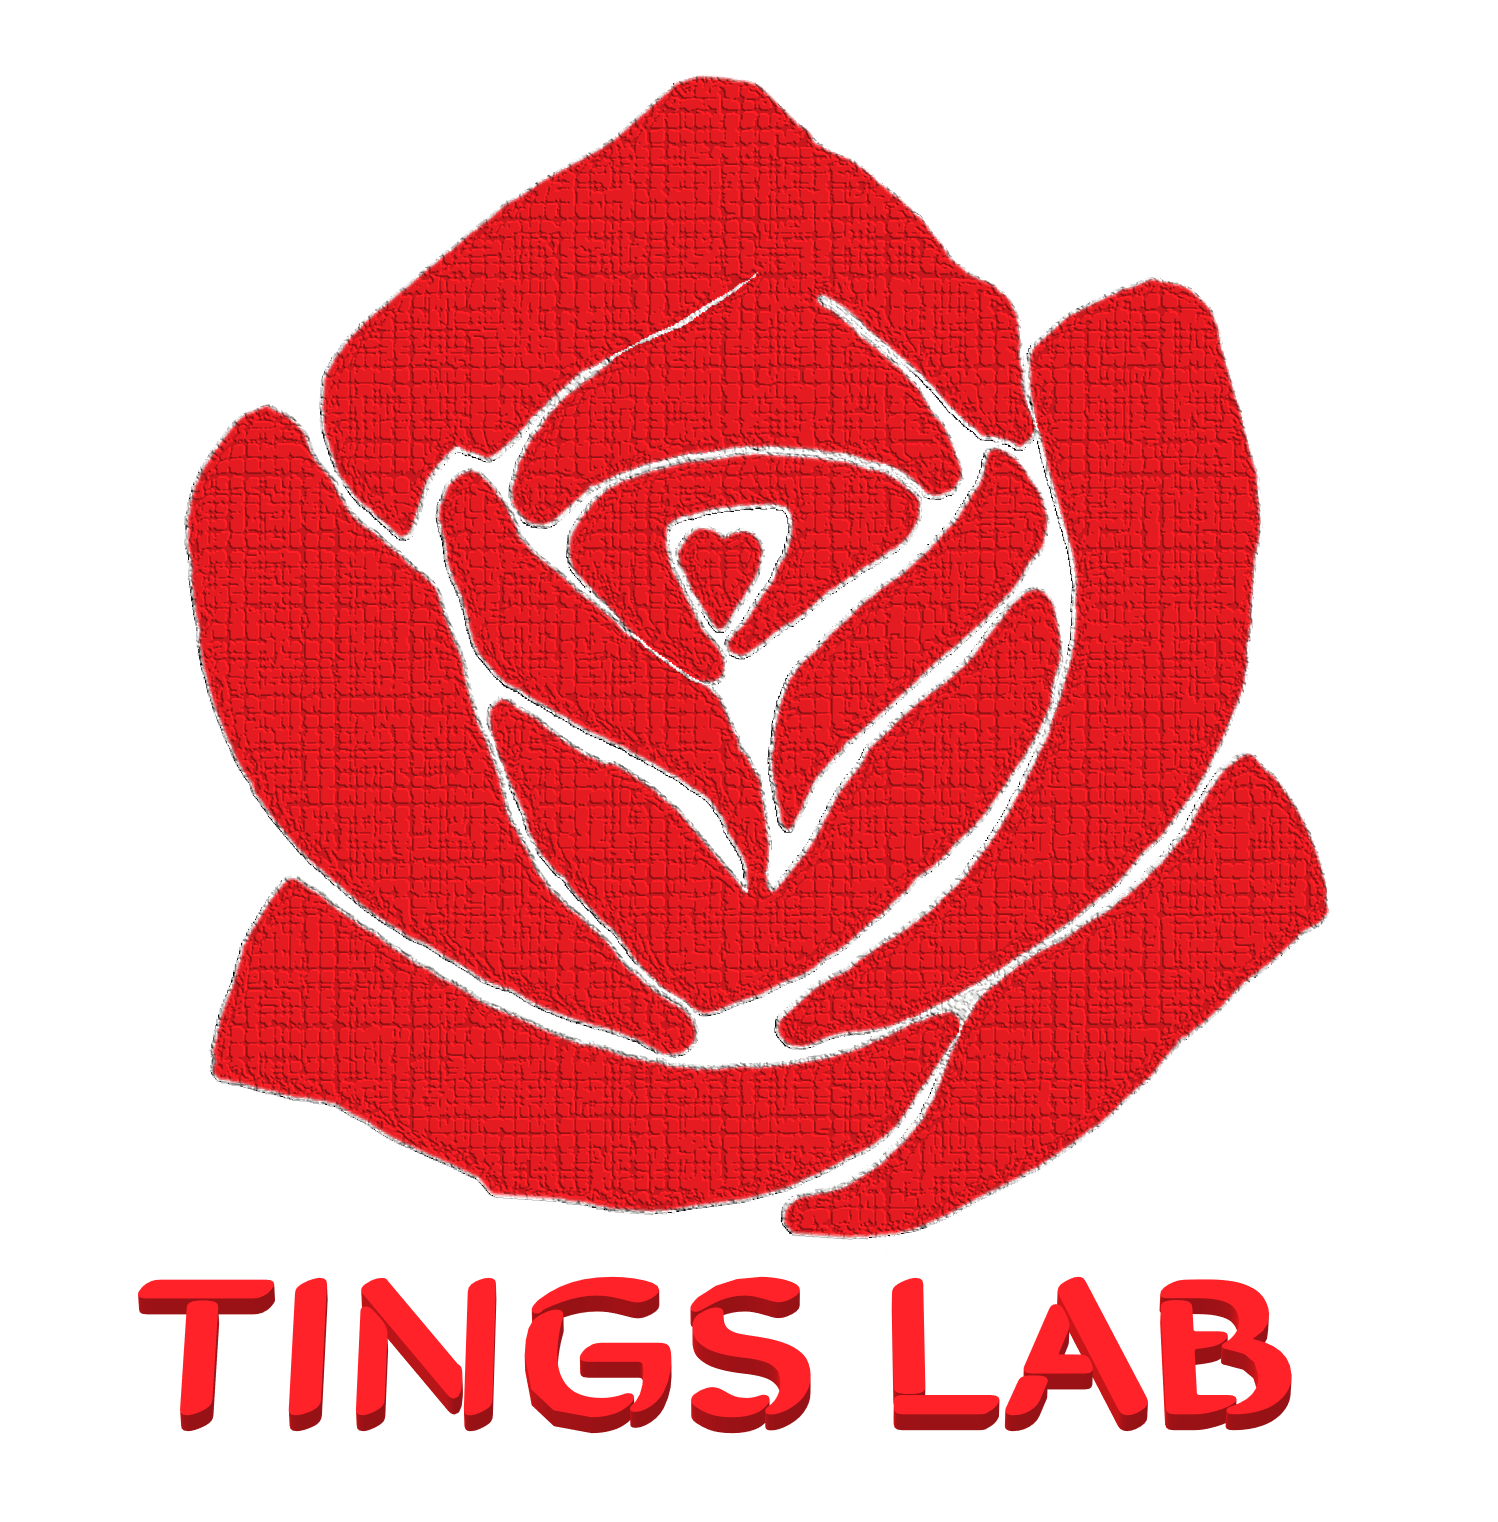 Beginning TINGS Lab